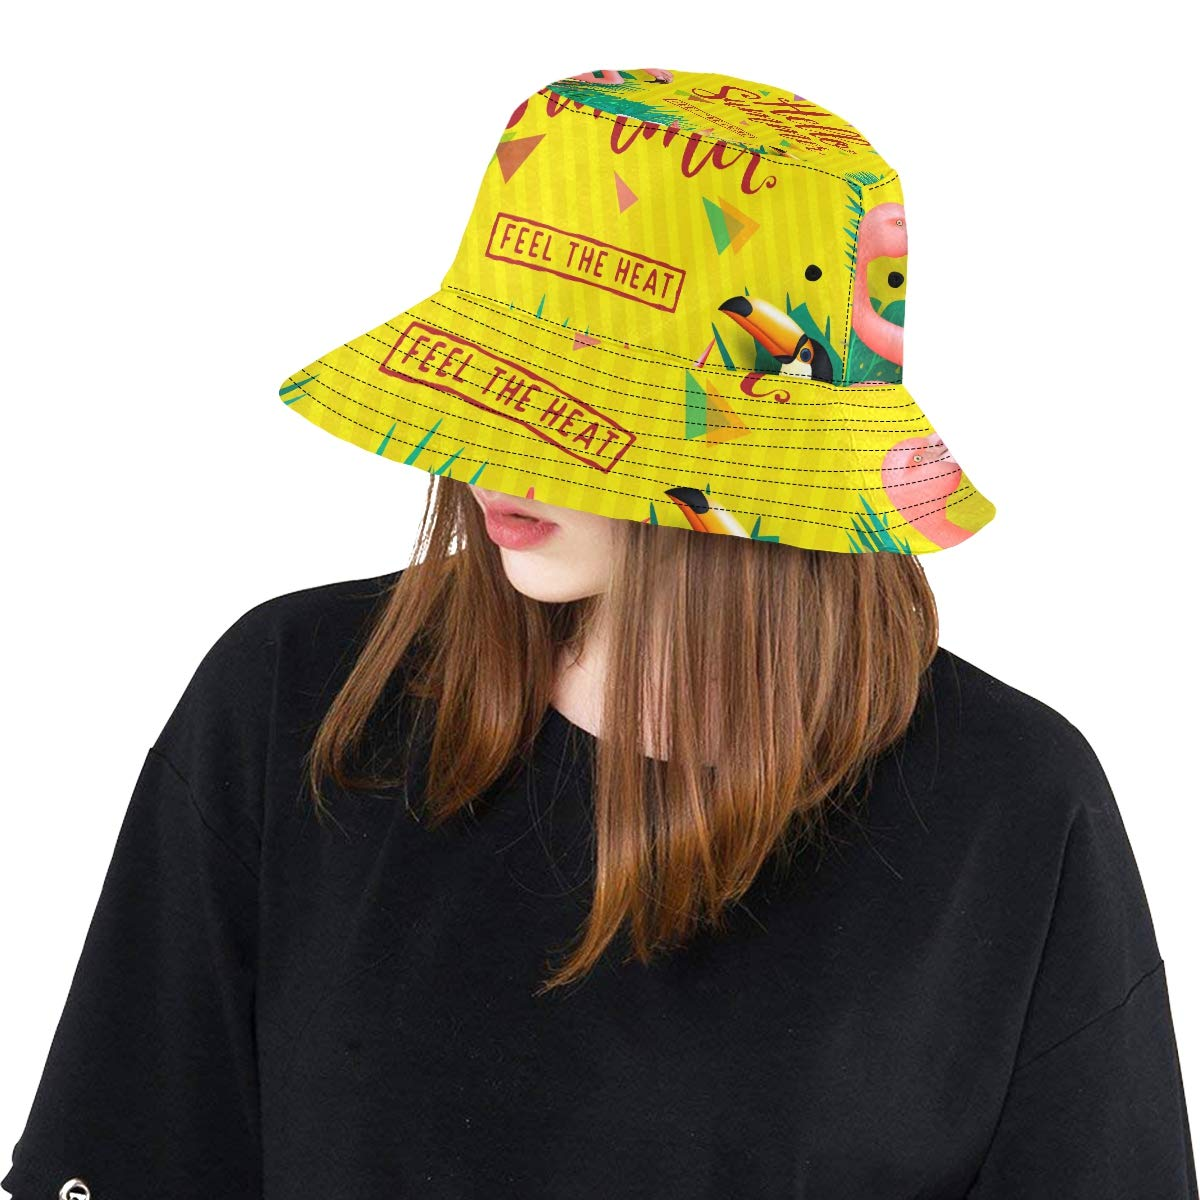 Seasonal Hot Cool Hello Summer New Summer Unisex Cotton Fashion Fishing Sun Bucket Hats for Kid Teens Women and Men with Customize Top Packable Fisherman Cap for Outdoor Travel